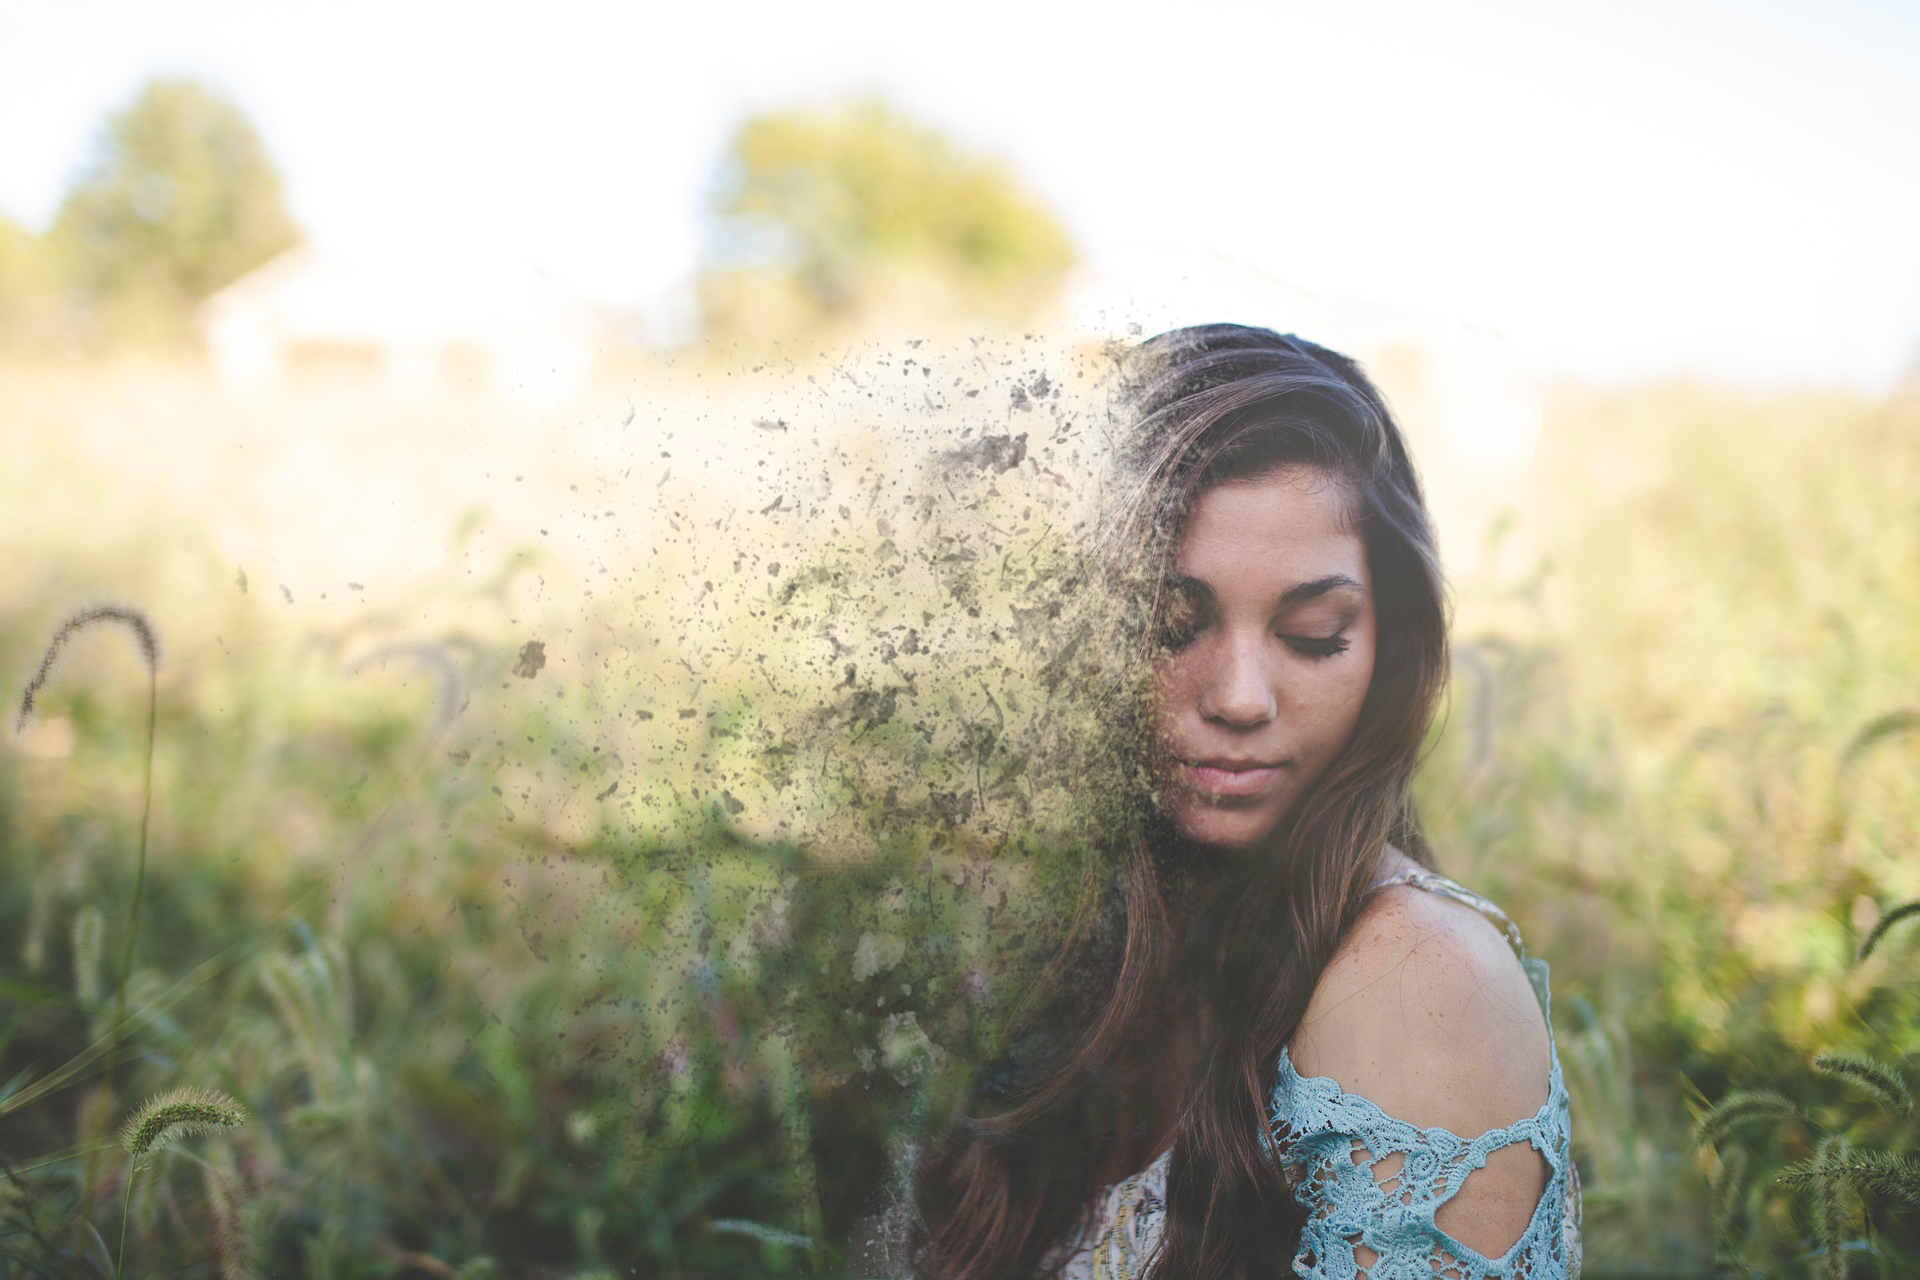 create a disintegration effect on any photo